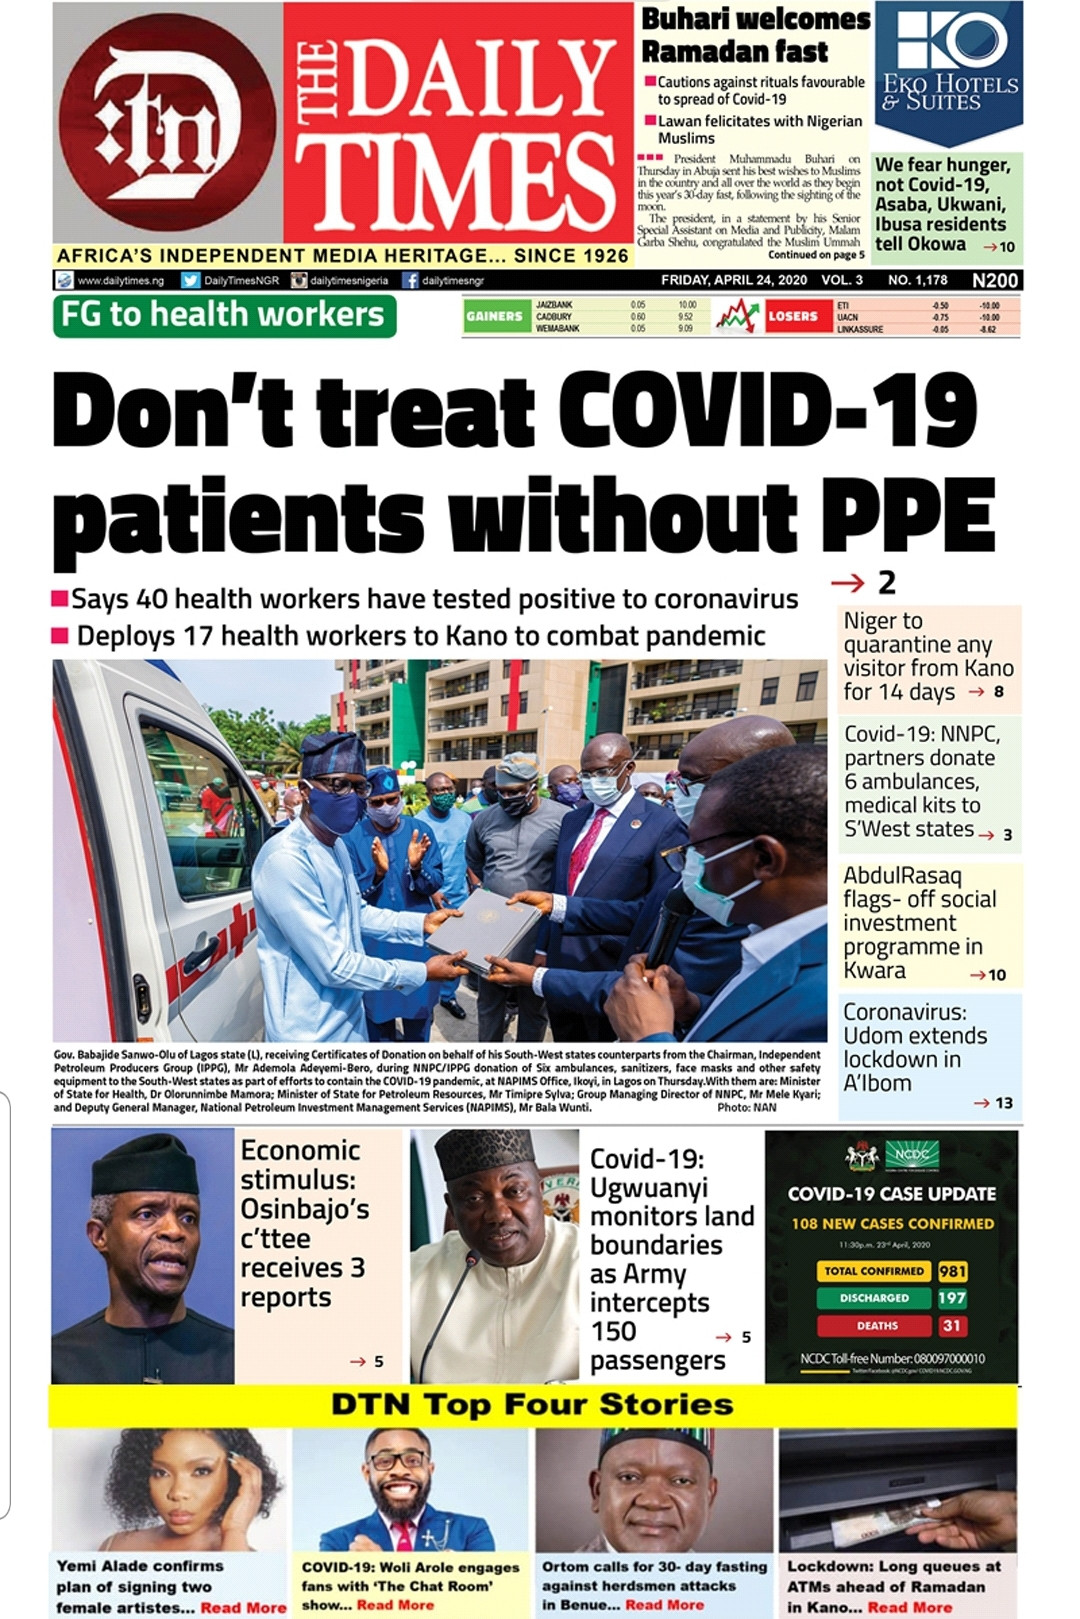 Daily Times Nigeria (DTN) Top four Stories...